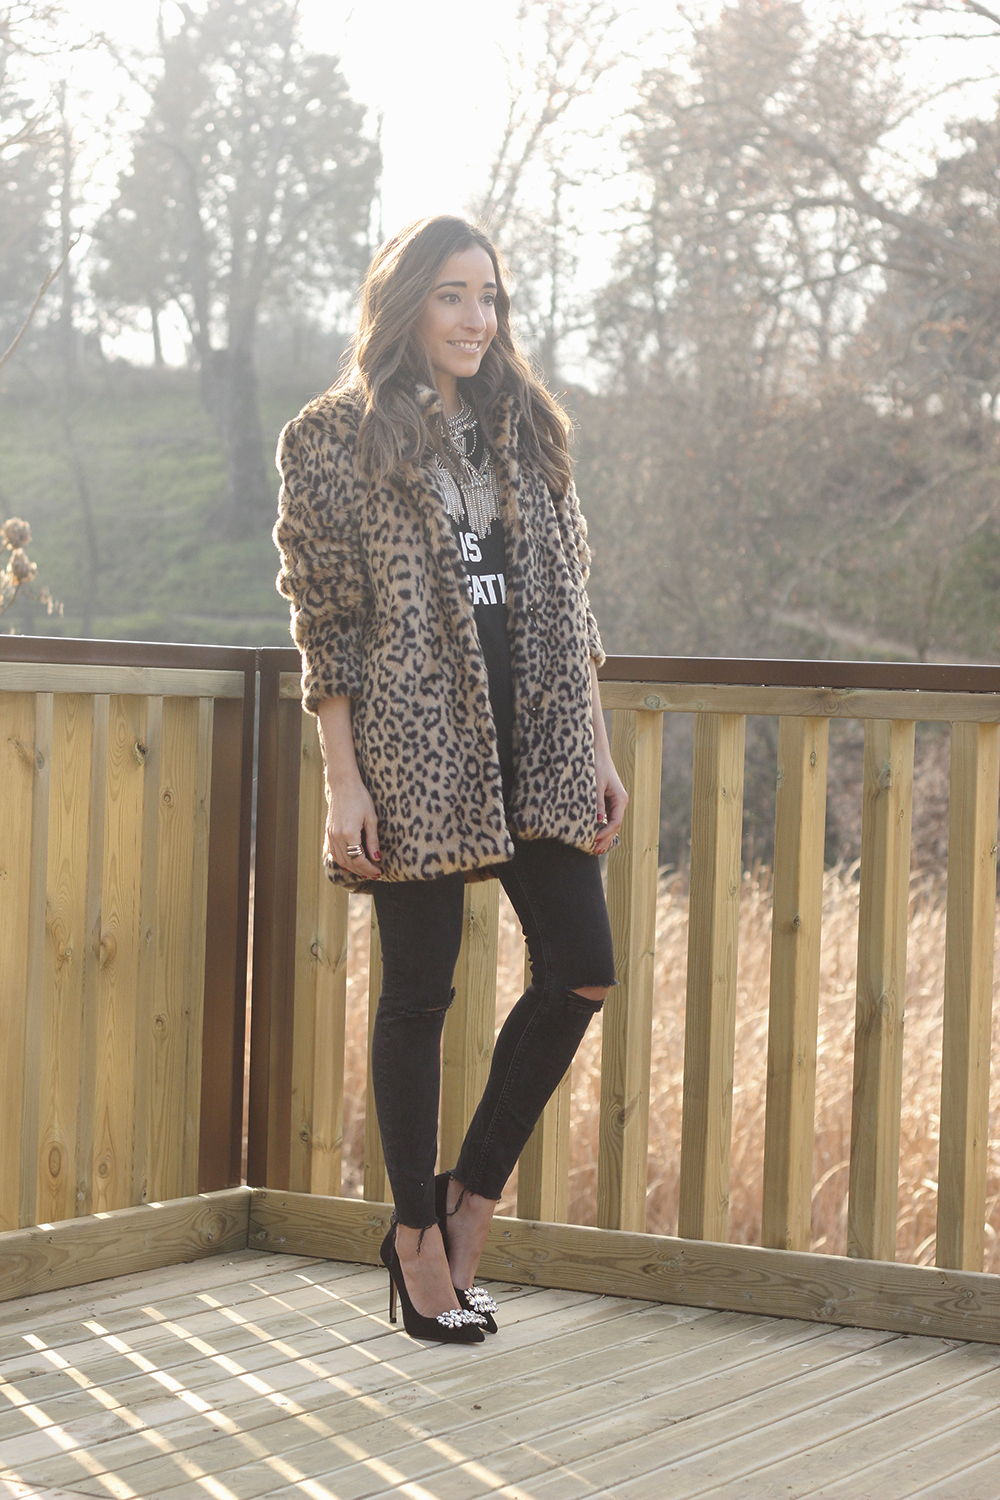 leopard coat black jeans jewel heels outfit style new year fashion03